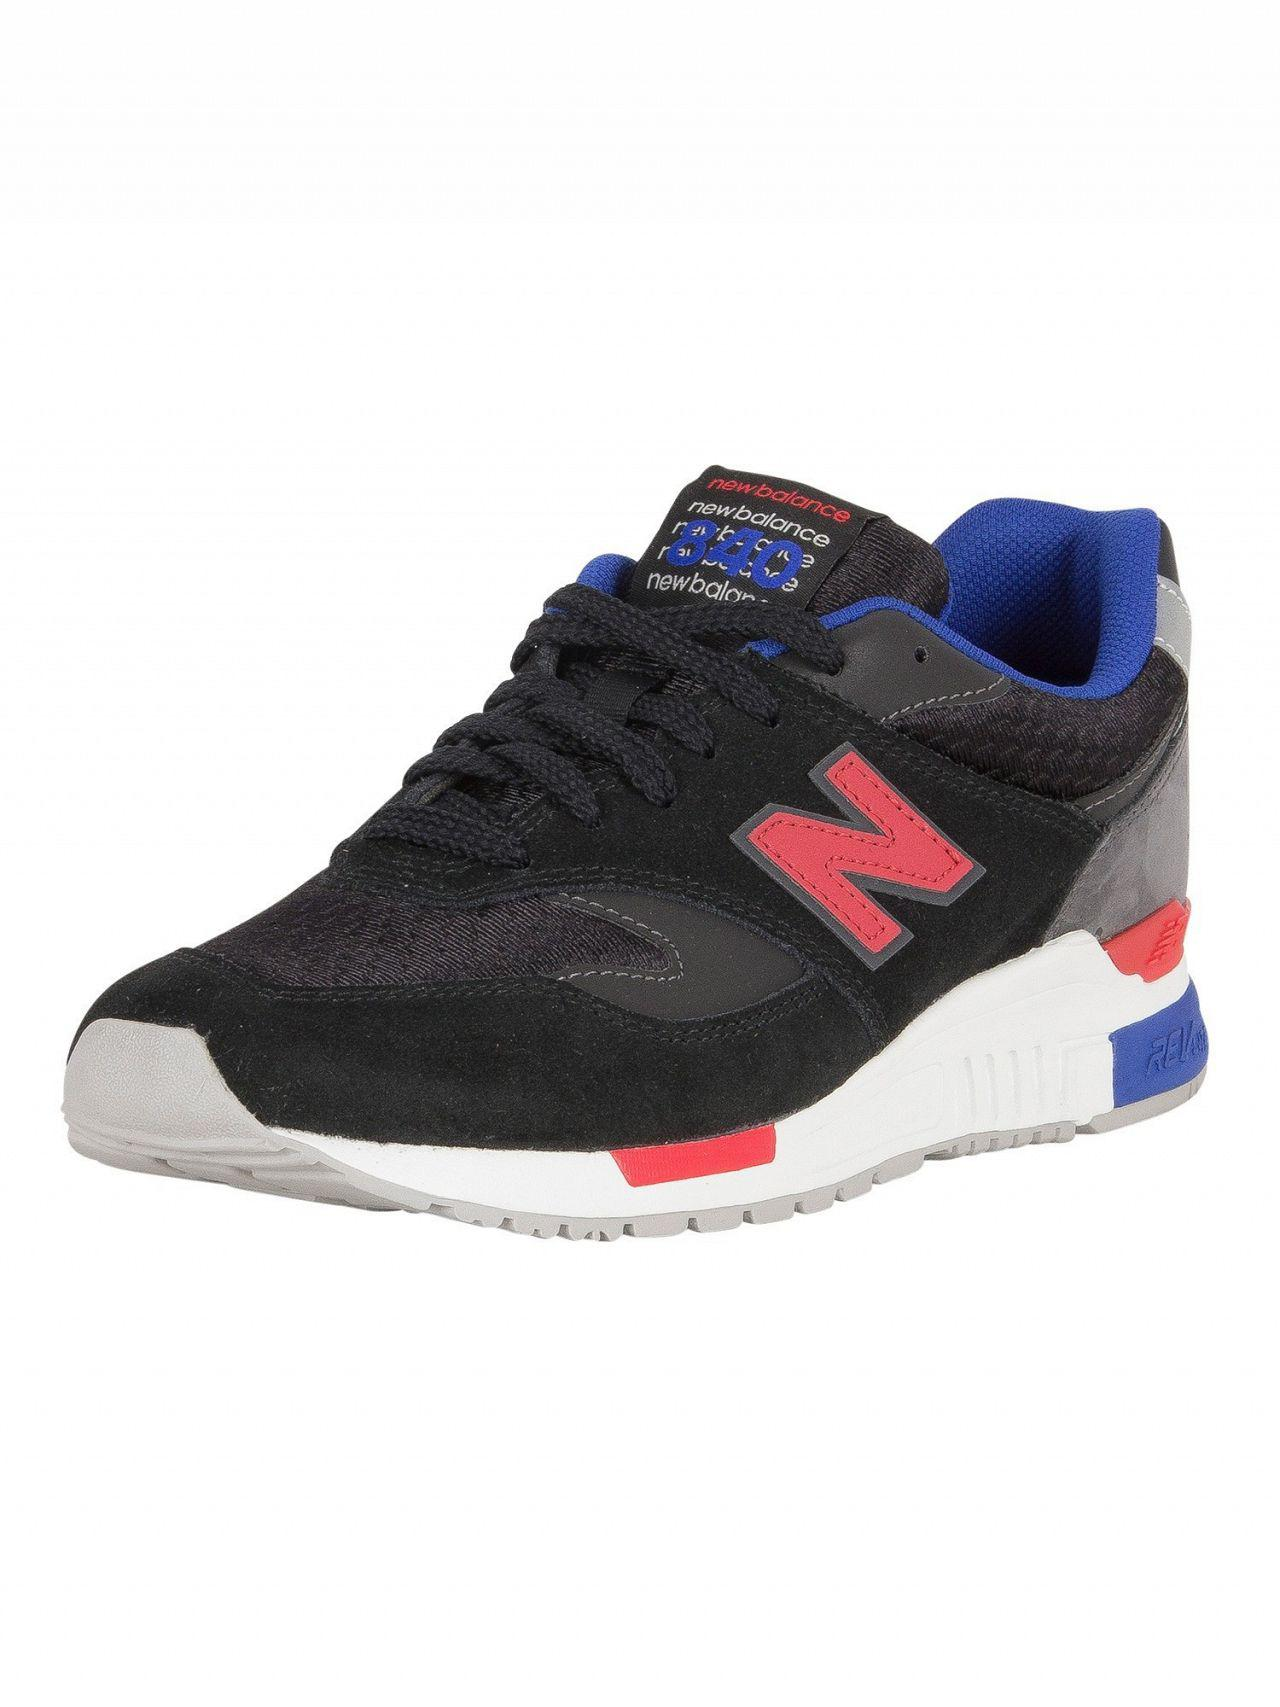 New Balance Black magnet 840 Suede Trainers in Black for Men - Lyst f622f0540bbd